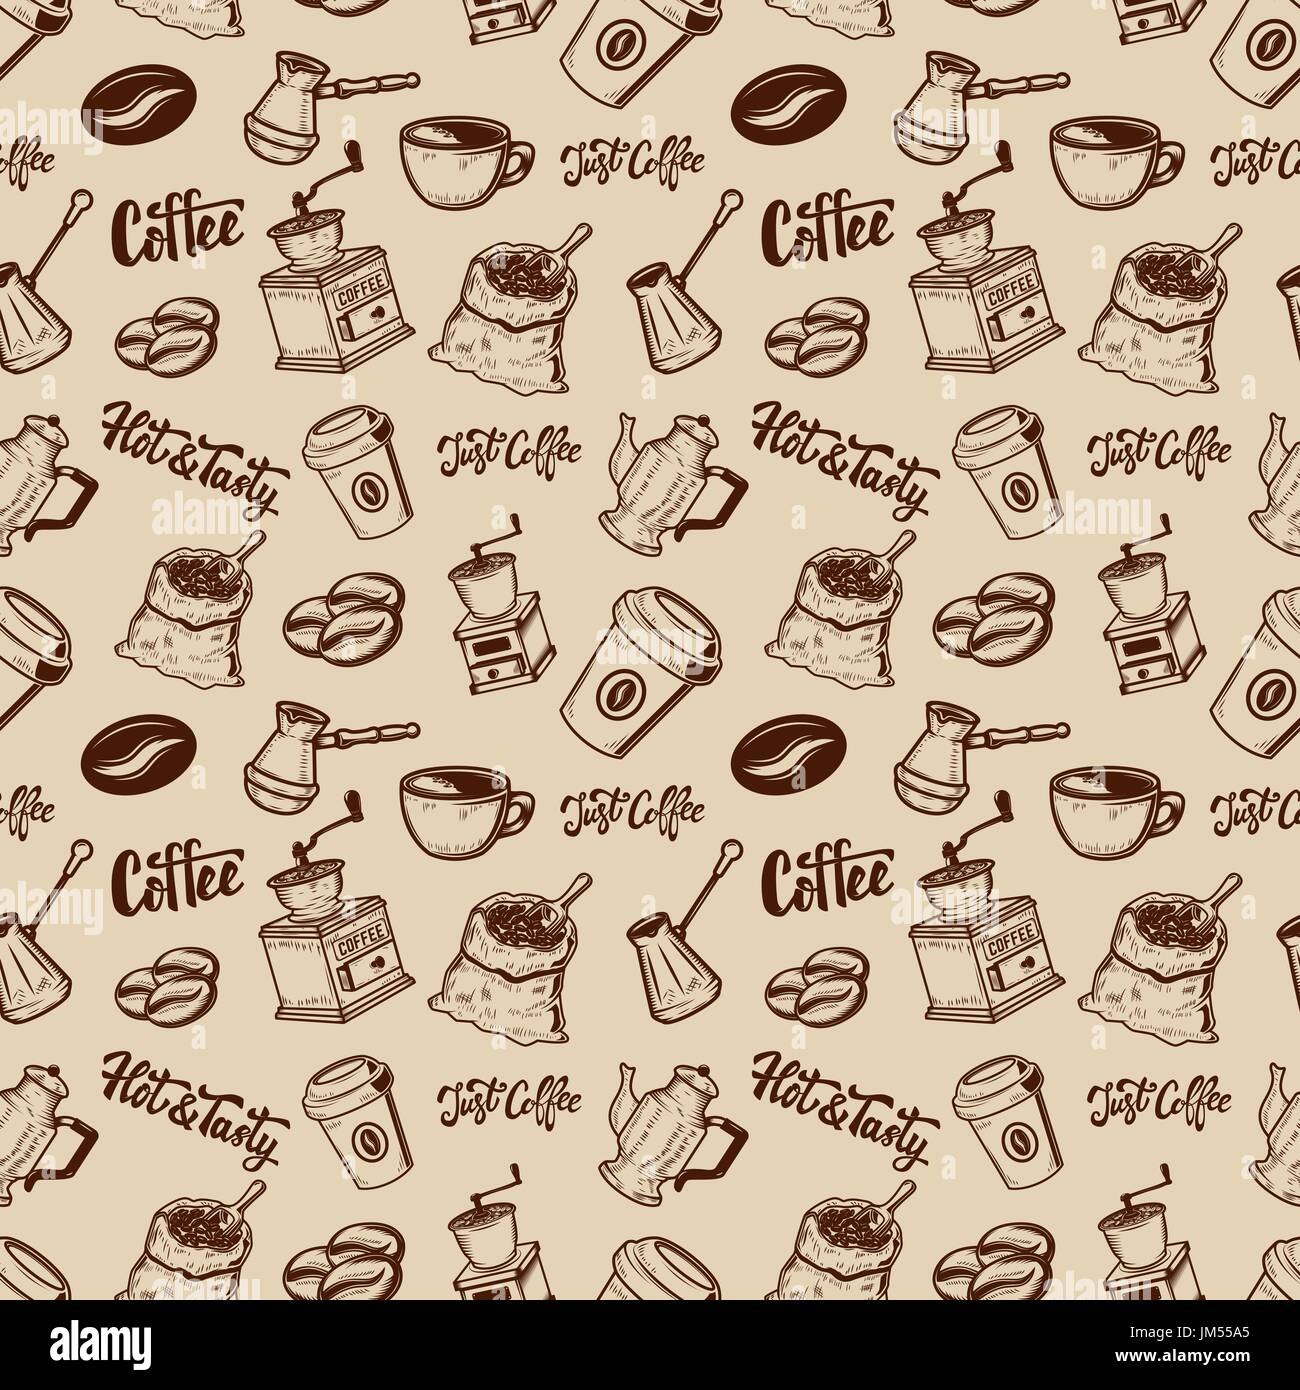 Coffee seamless pattern. Coffee beans, mills, cups.  Design element for poster, wrapping paper. Vector illustration - Stock Vector